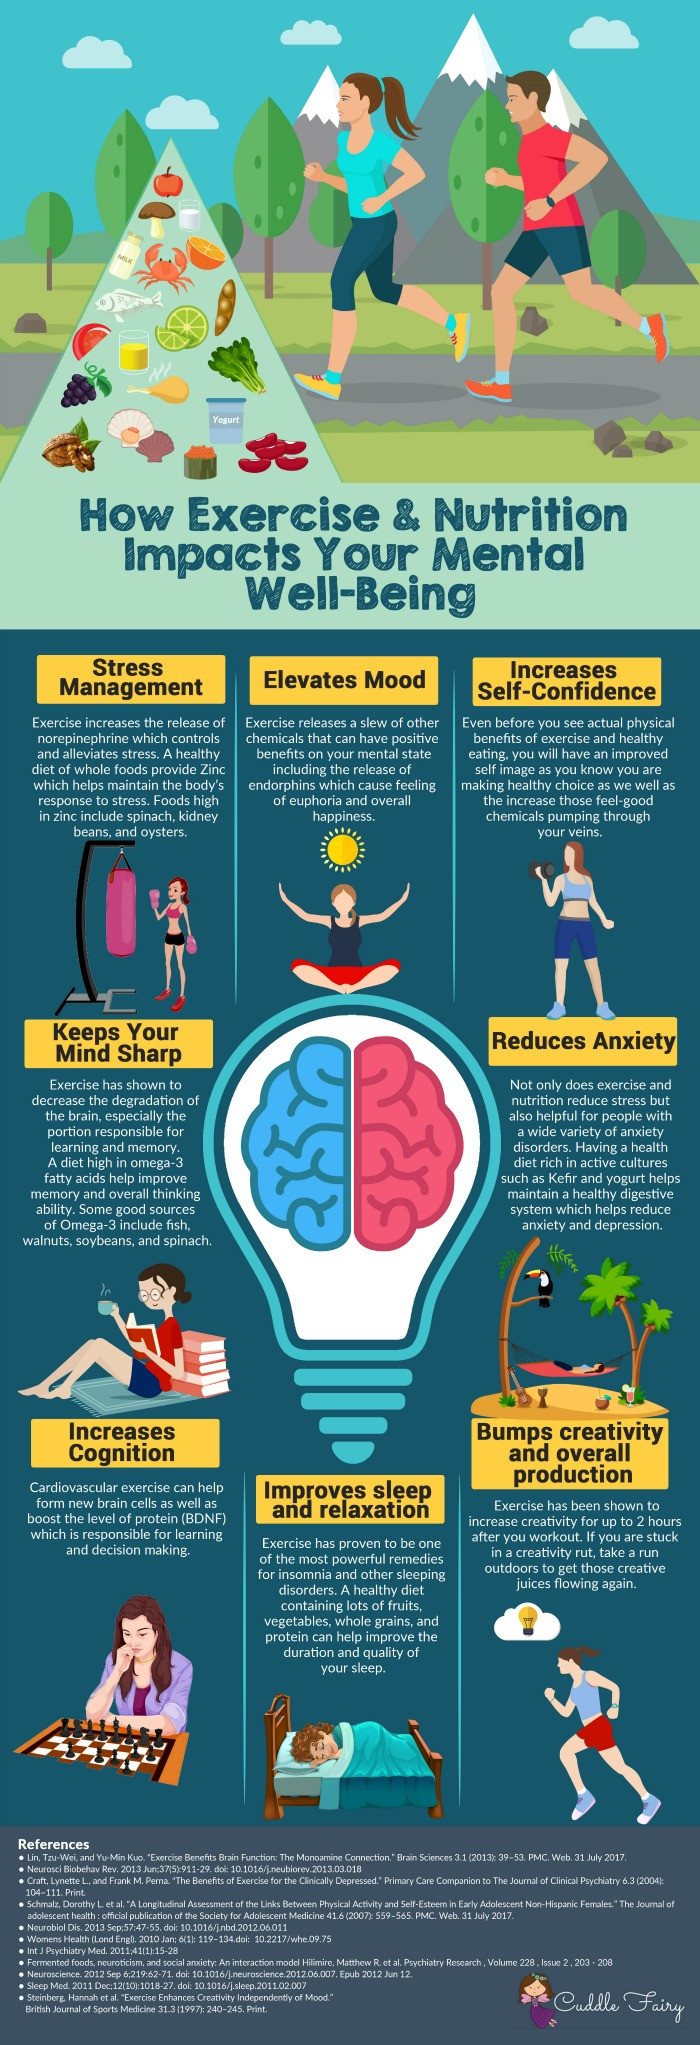 How_Excercise_Nutriton_Impacts_Well_Being